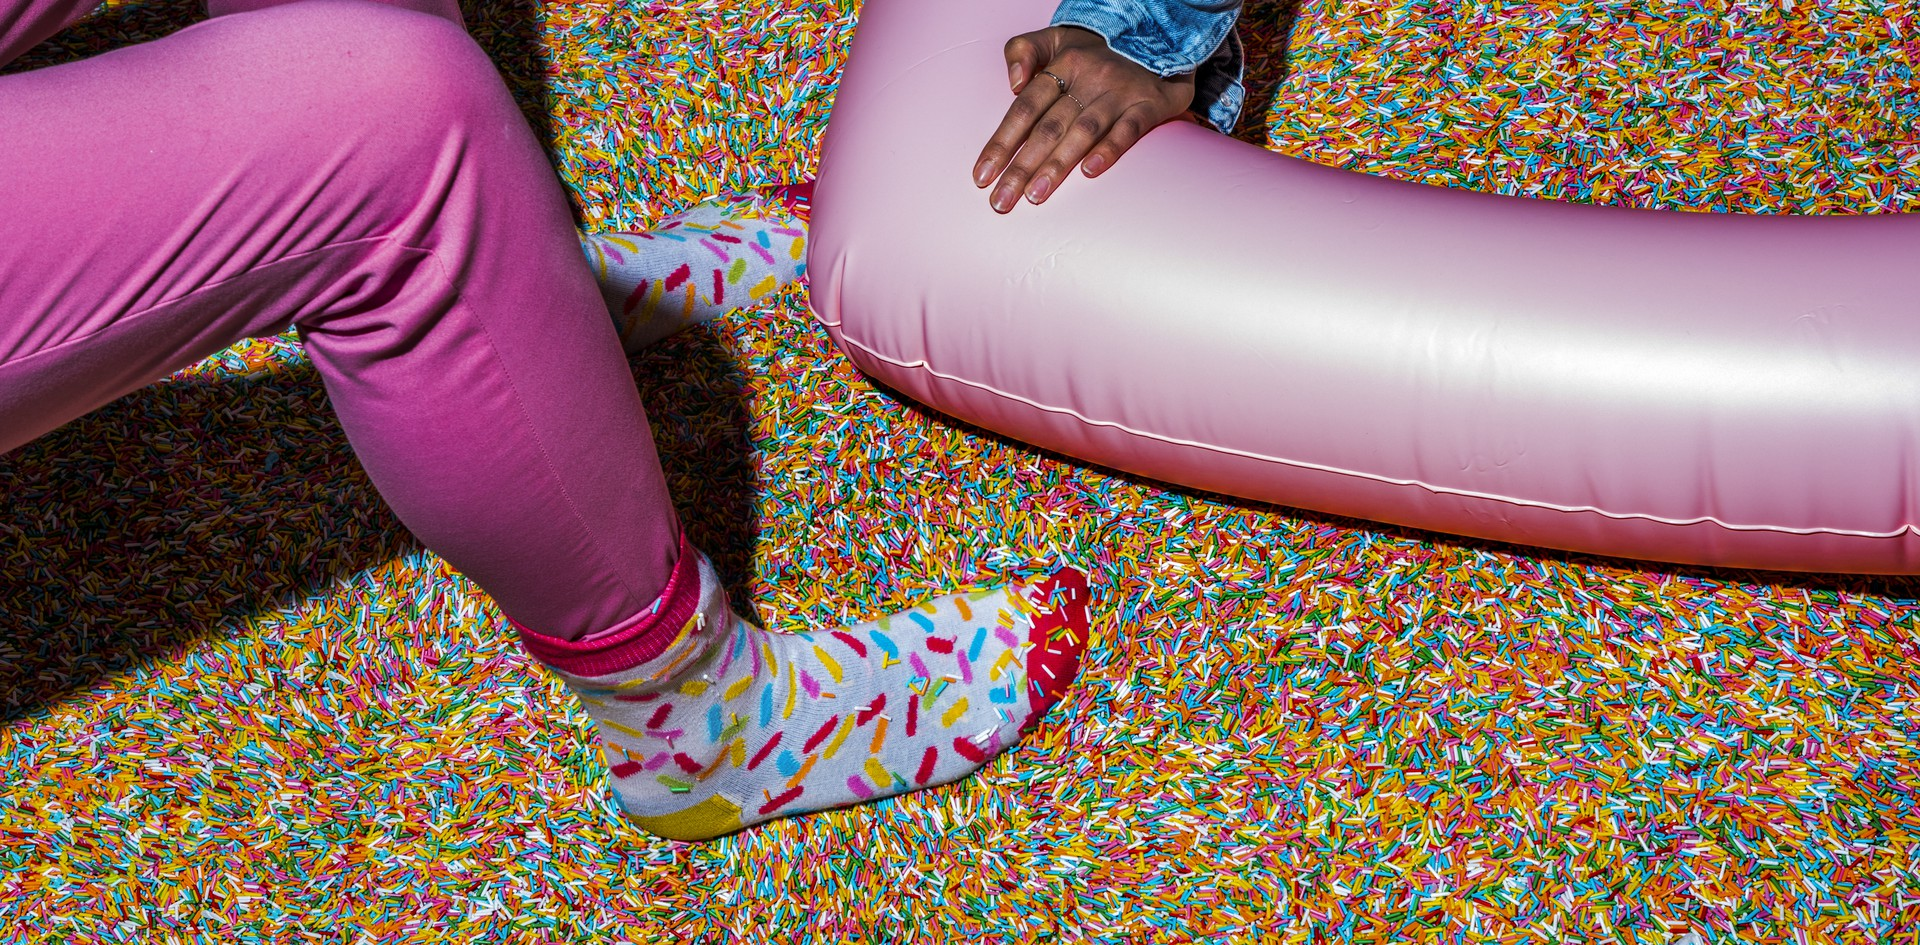 Museum of Ice Cream employees in a sprinkle pool